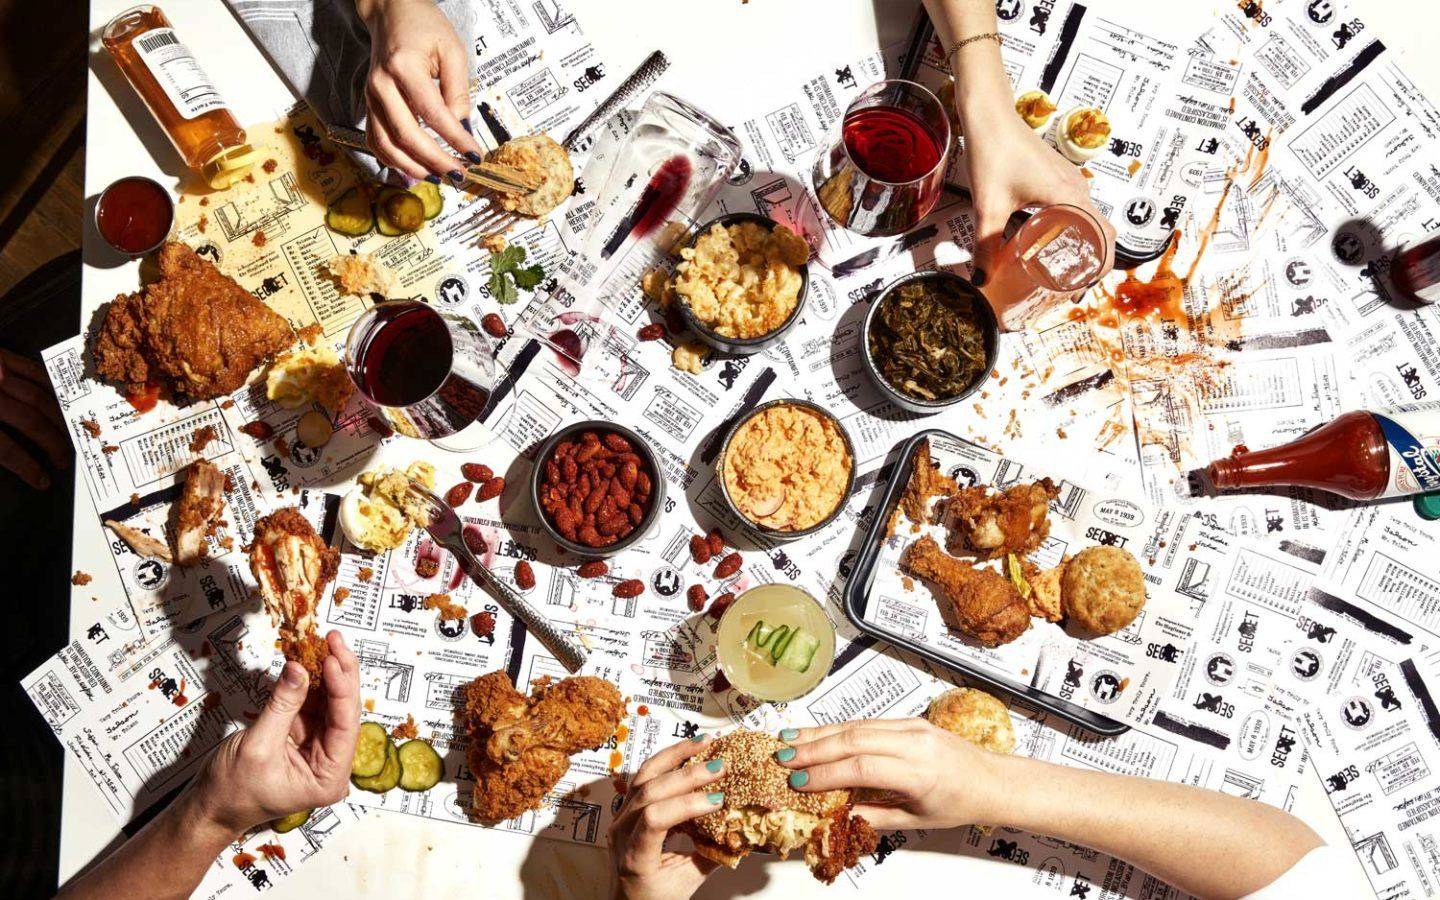 overhead of a table covered in newspaper with fried chicken dishes on it